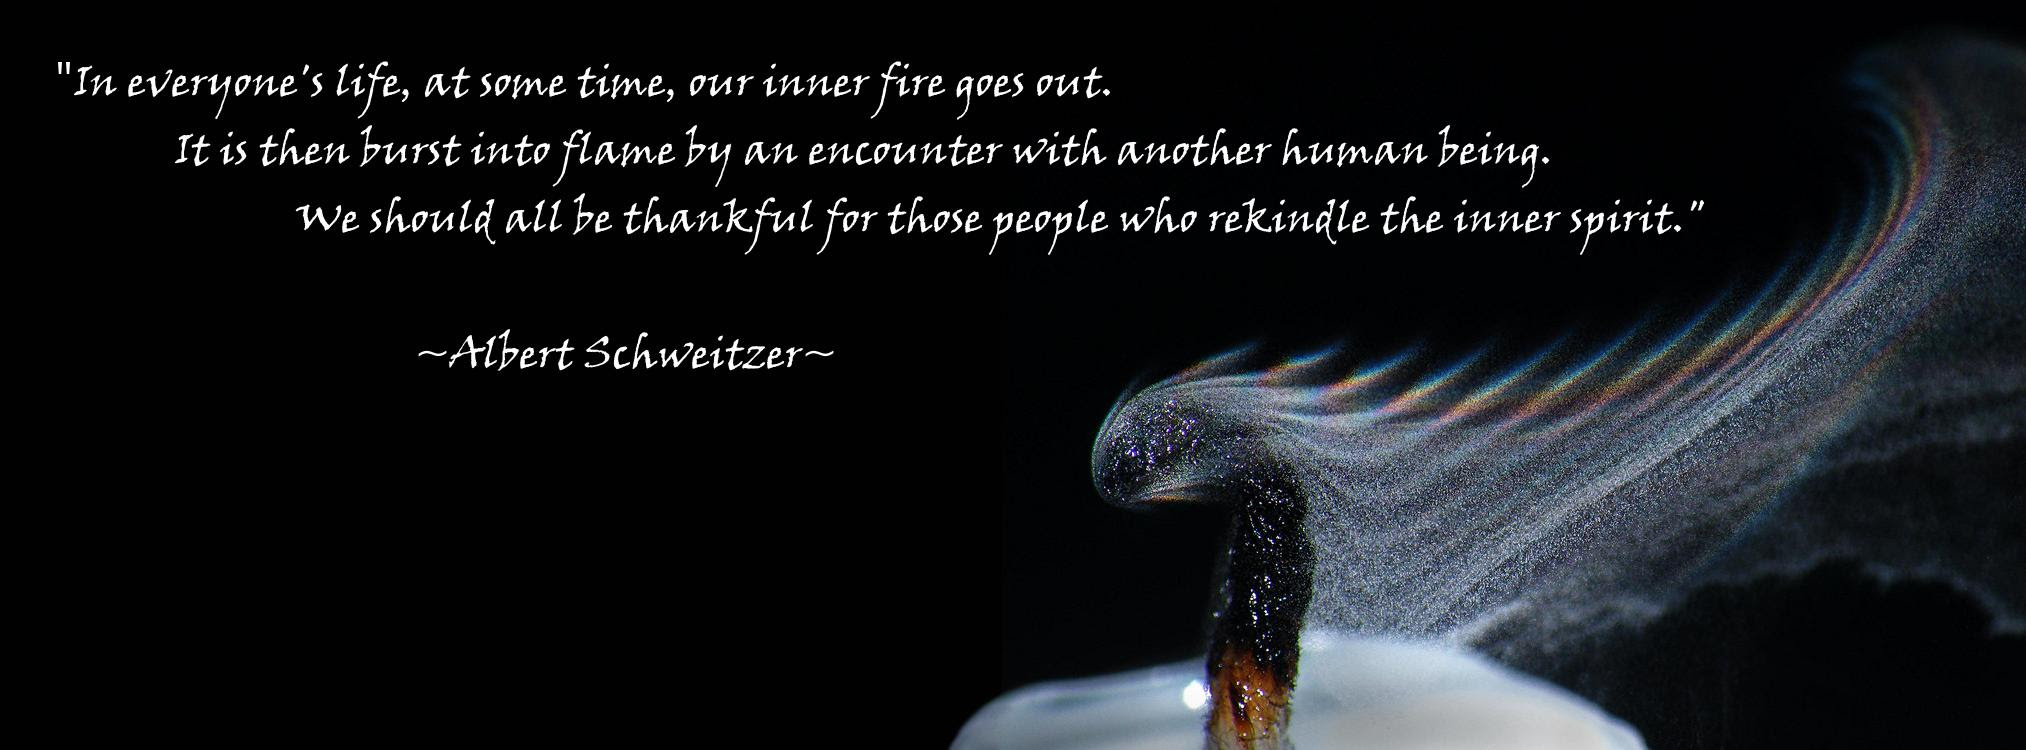 Rekindle The Inner Spirit Albert Schweitzer 2026x750 Quotesporn